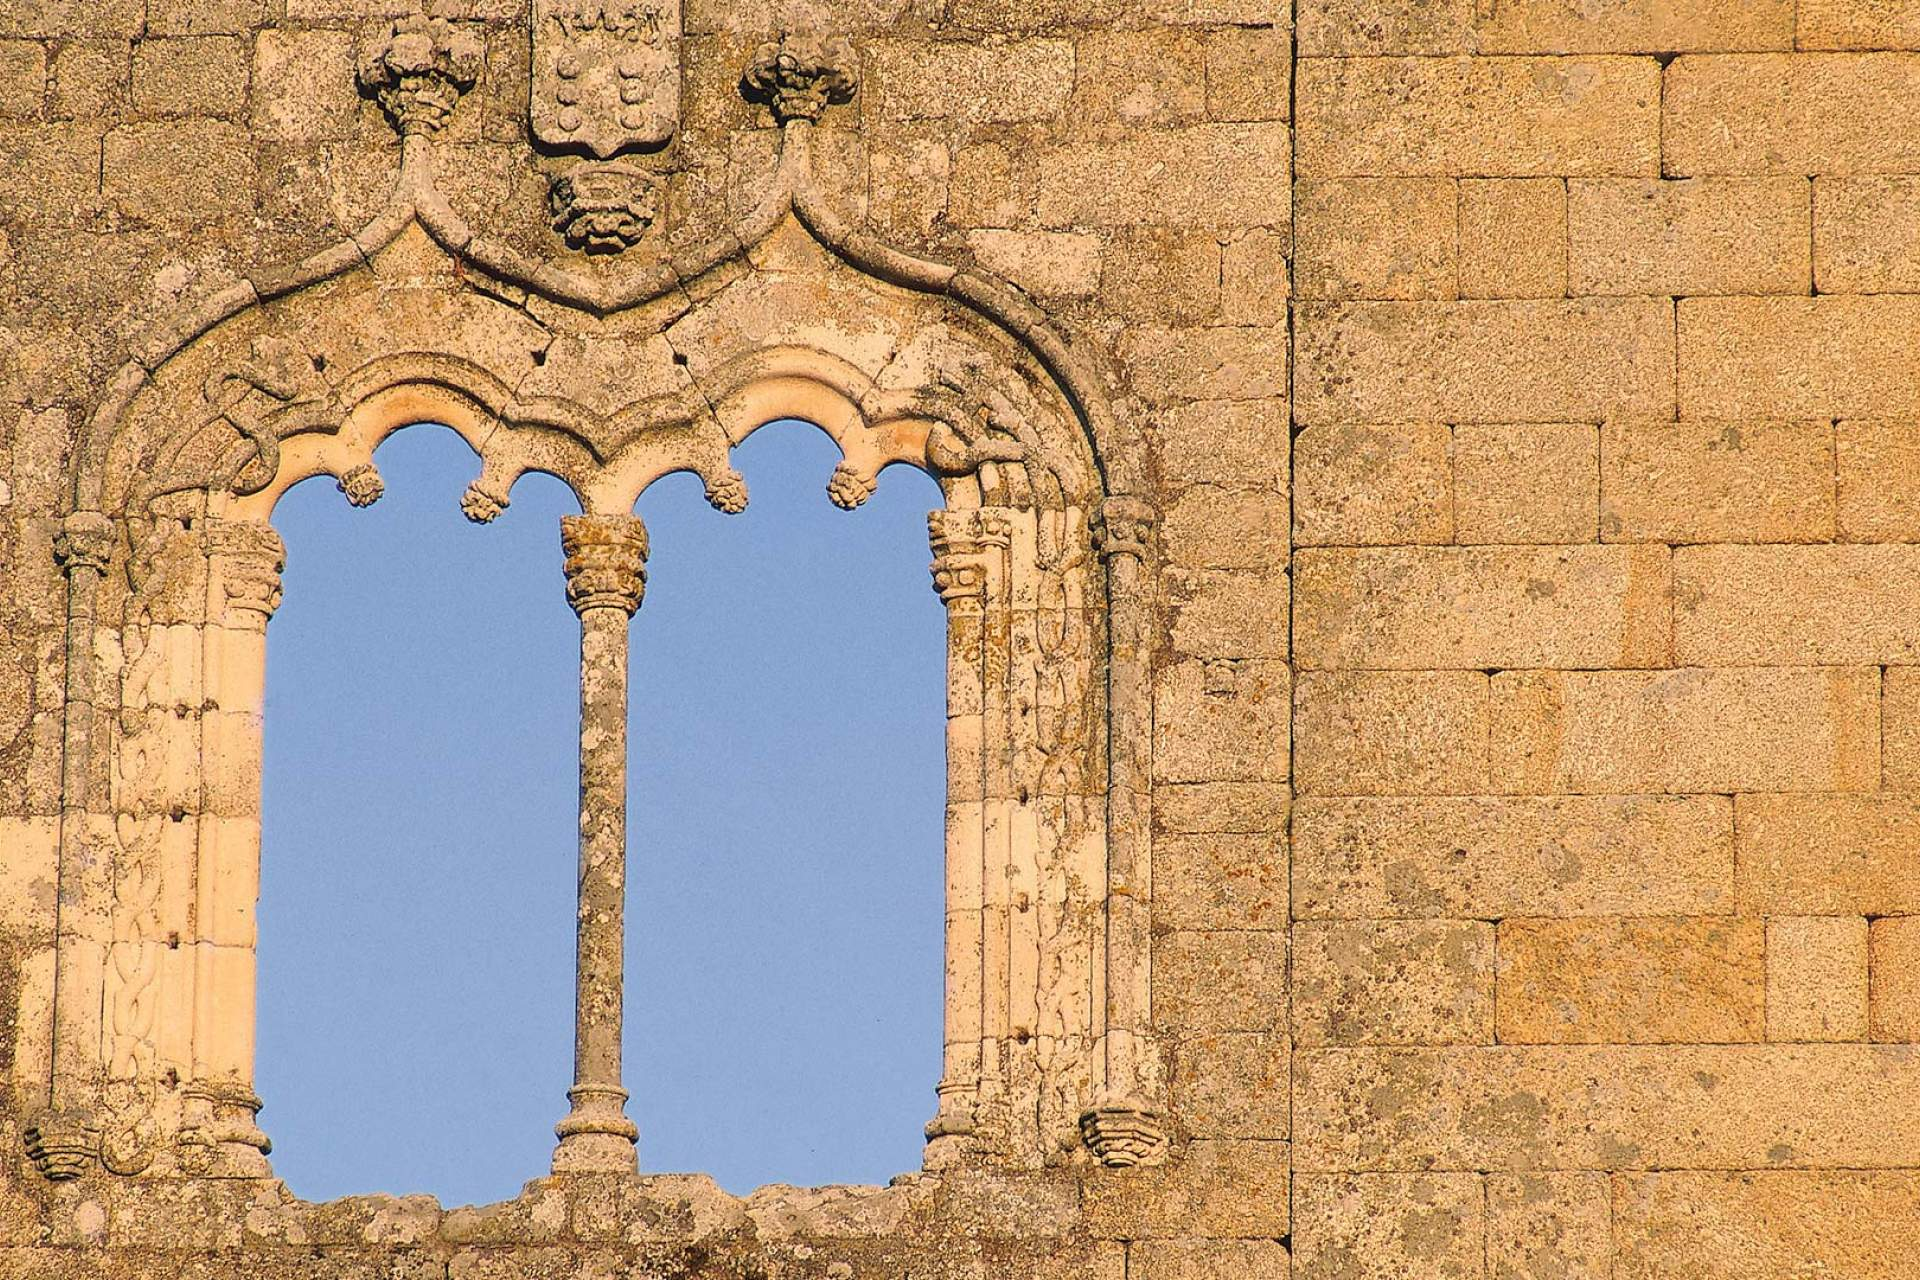 Detail of the Belmonte Castle / Belmonte / Turismo de Portugal